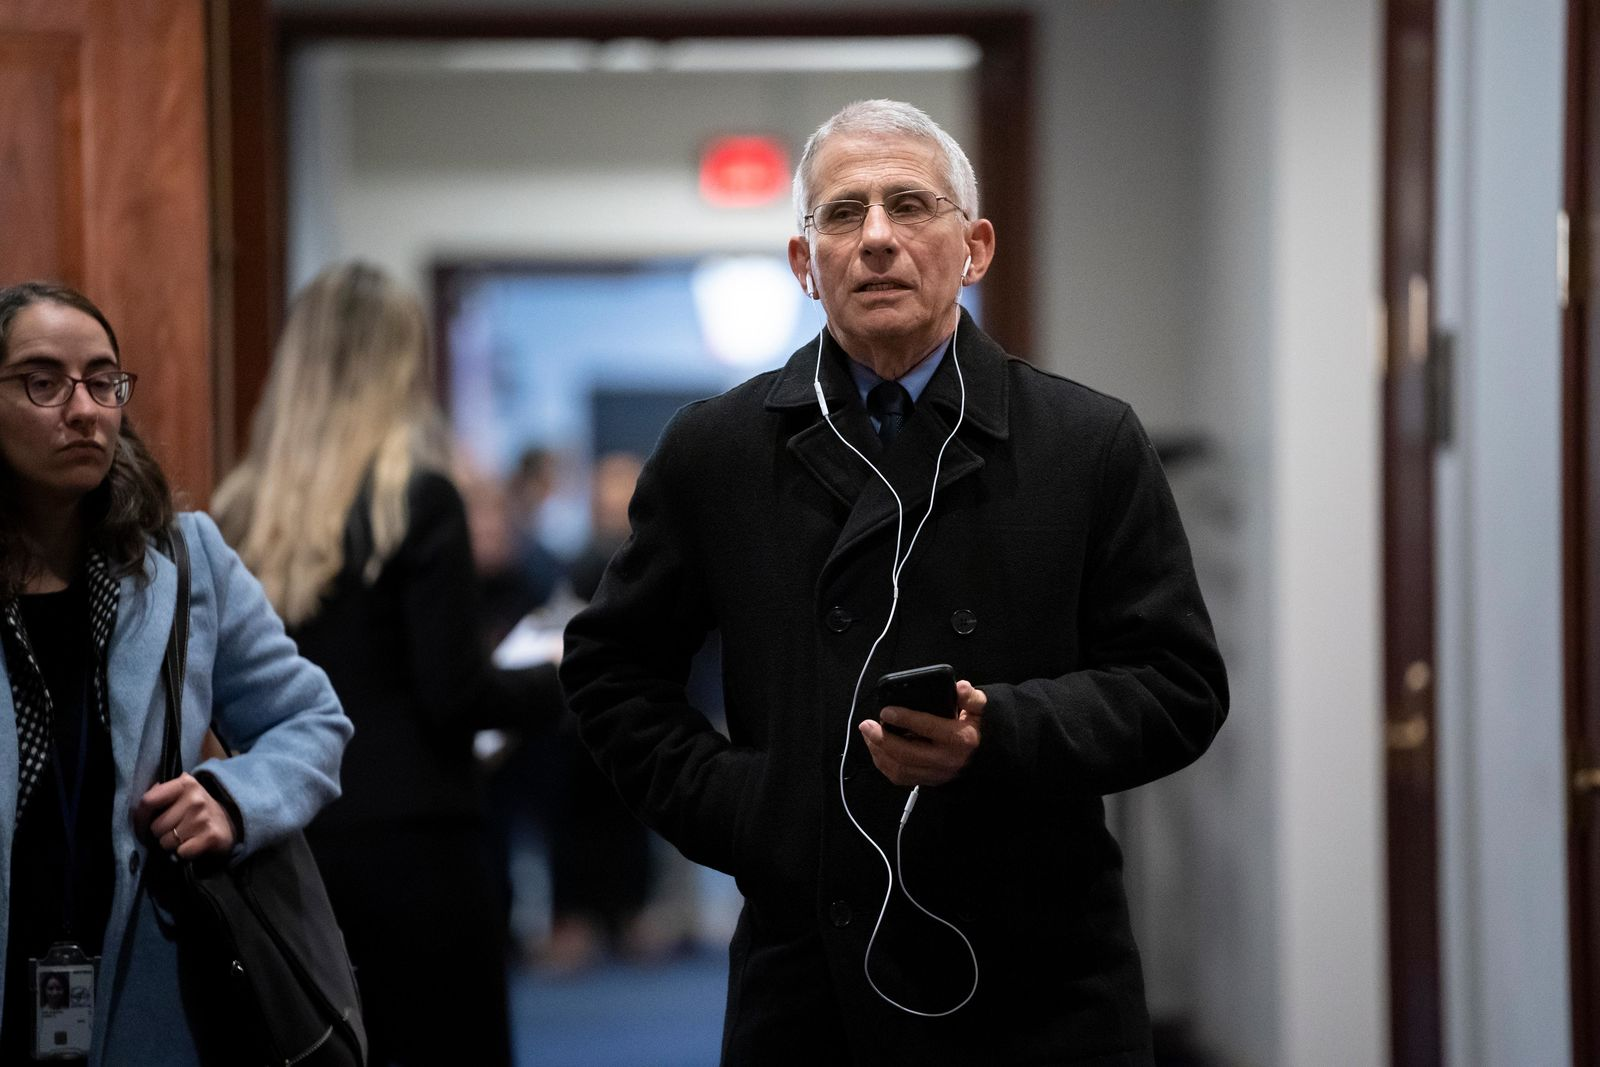 Anthony Fauci, director of the National Institute of Allergy and Infectious Diseases, takes a phone call outside a room on Capitol Hill where he and others from the president's coronavirus task force briefed members of the House of Representatives on the outbreak of the new respiratory virus sweeping the globe, in Washington, Friday, Feb. 28, 2020. (AP Photo/J. Scott Applewhite)